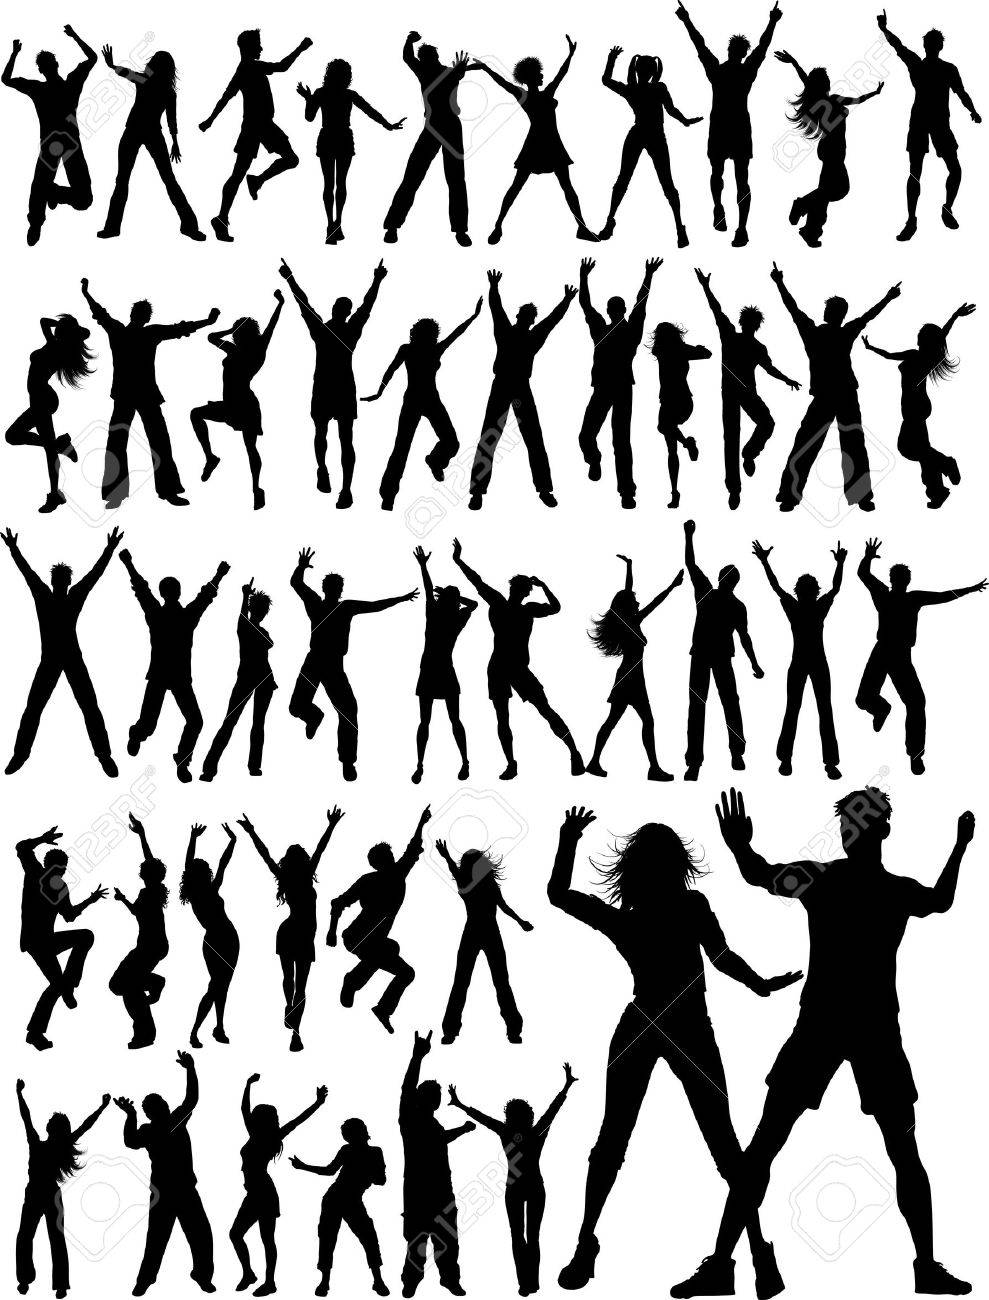 Huge collection of silhouettes of people dancing Stock Vector - 8847347